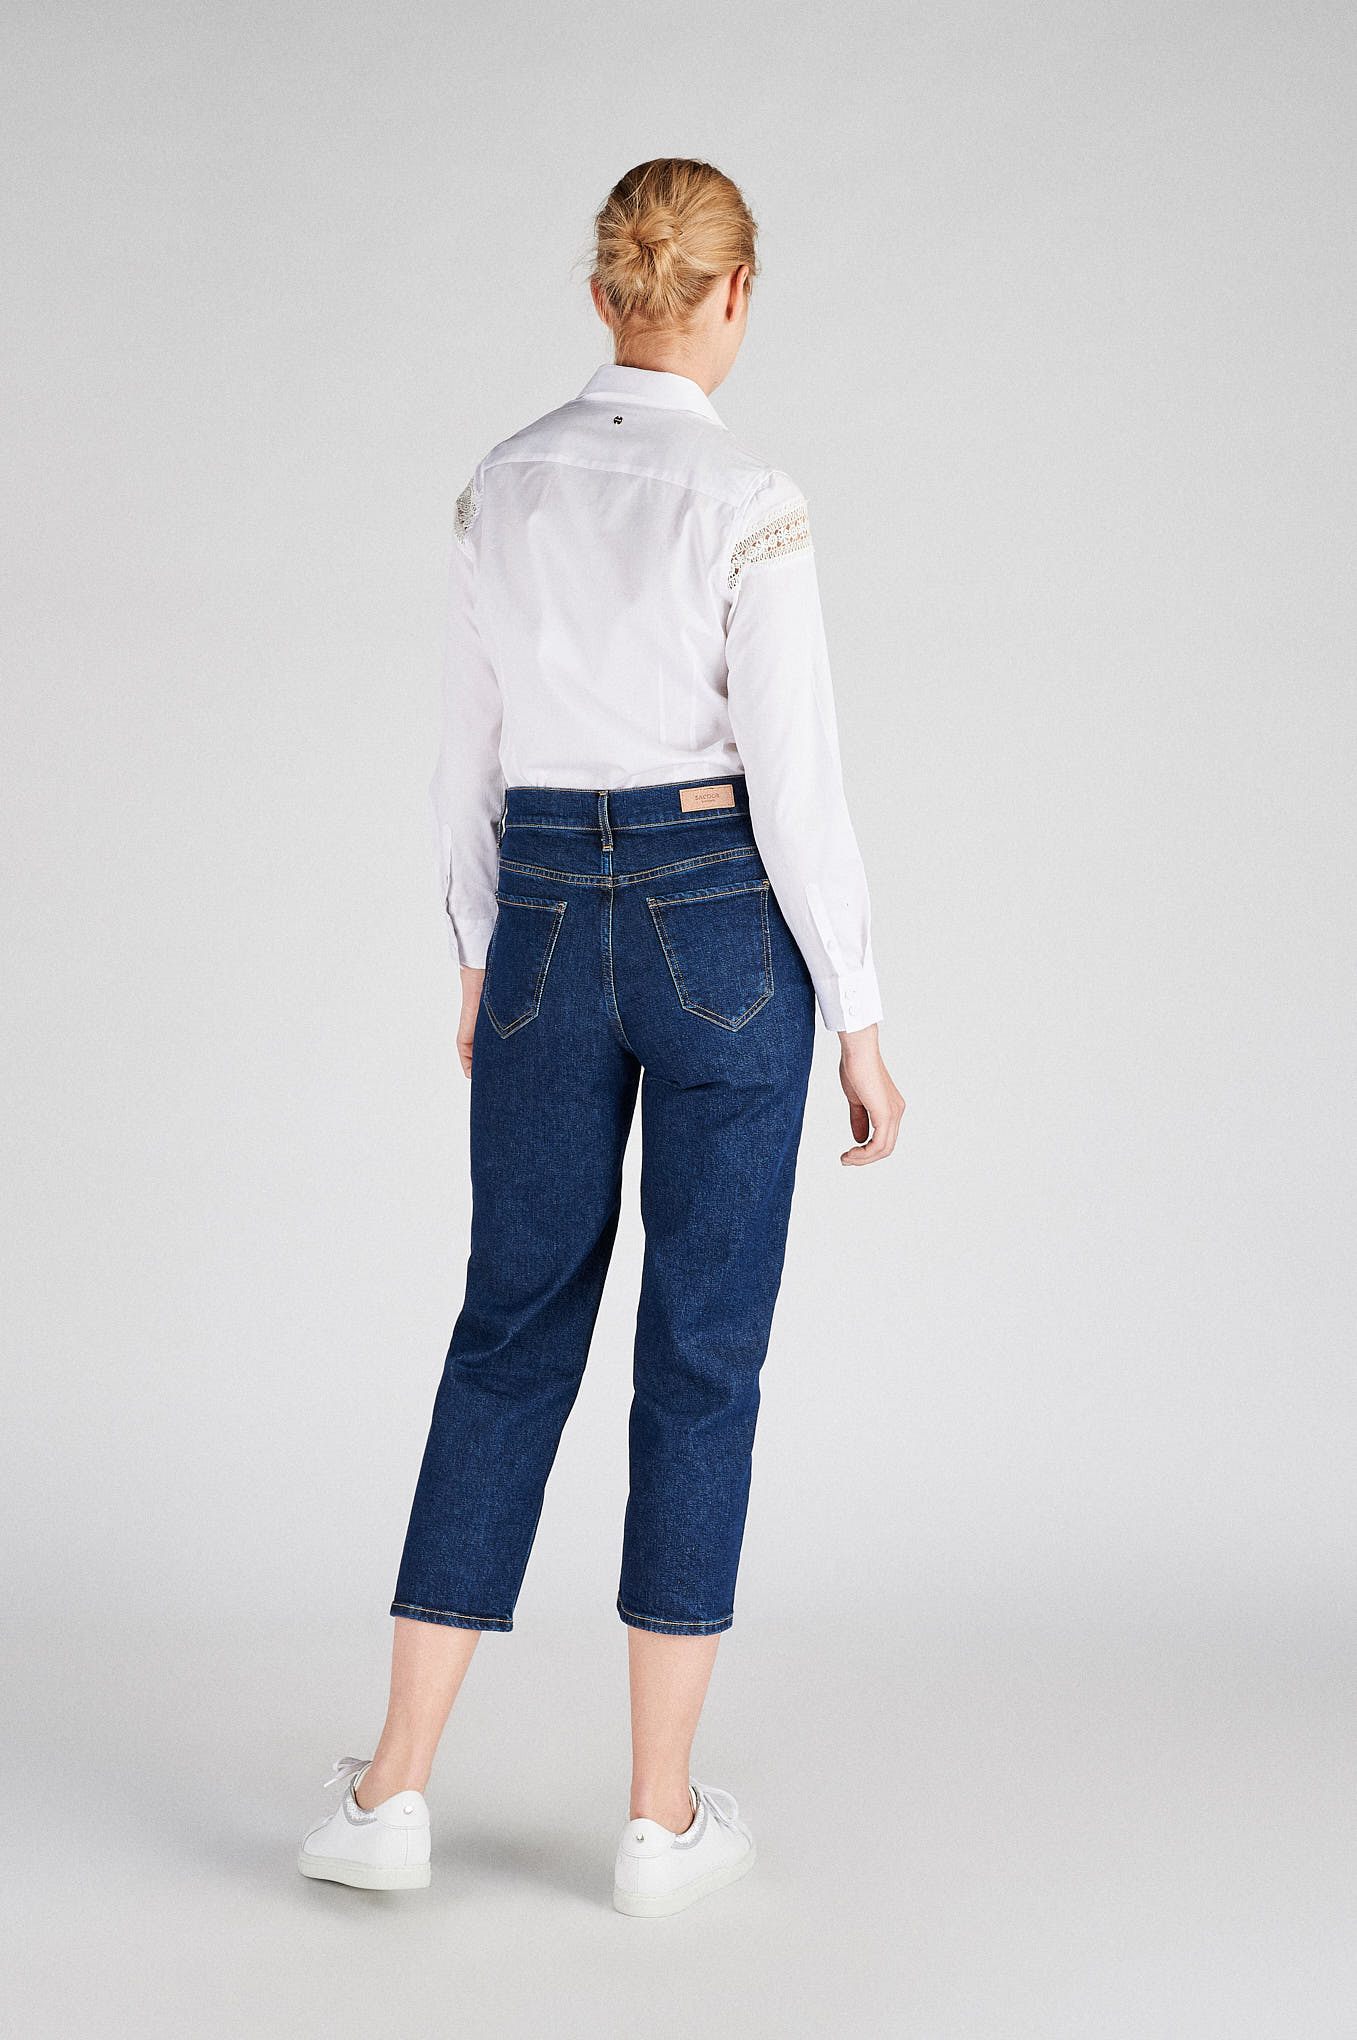 Sacoor Brothers | Women's Clothing and Accessories